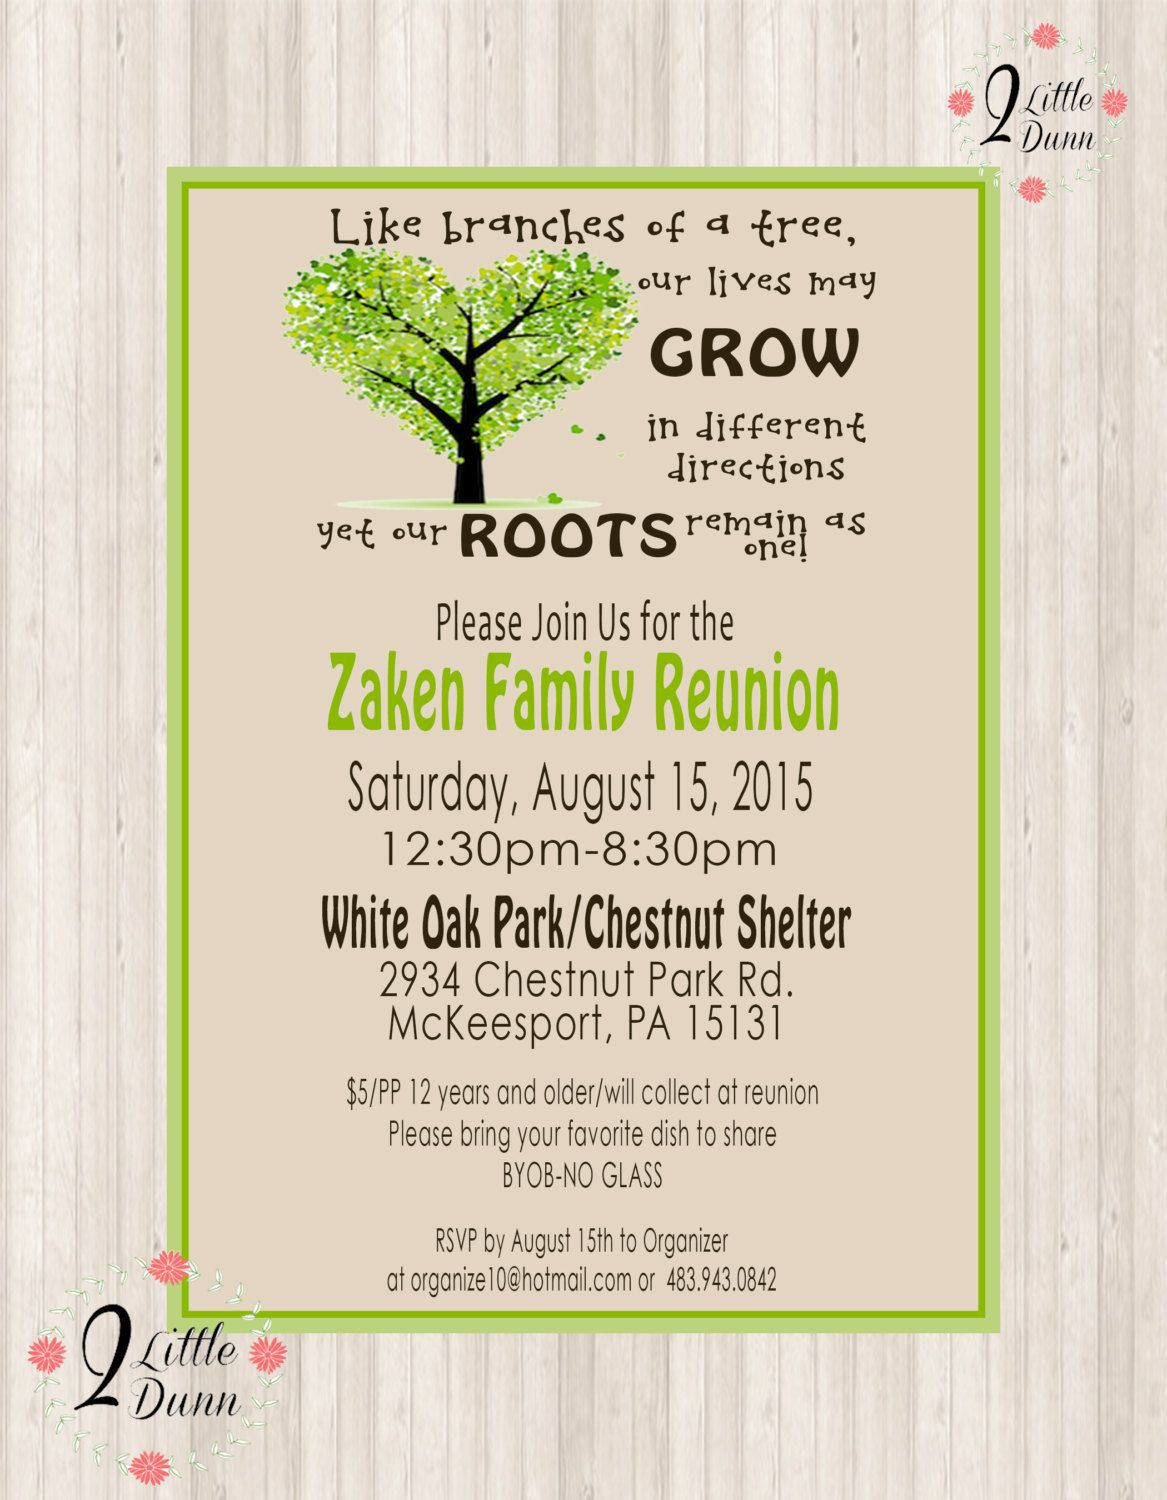 000 Unusual Family Reunion Invitation Template Free High Def  For Word OnlineFull